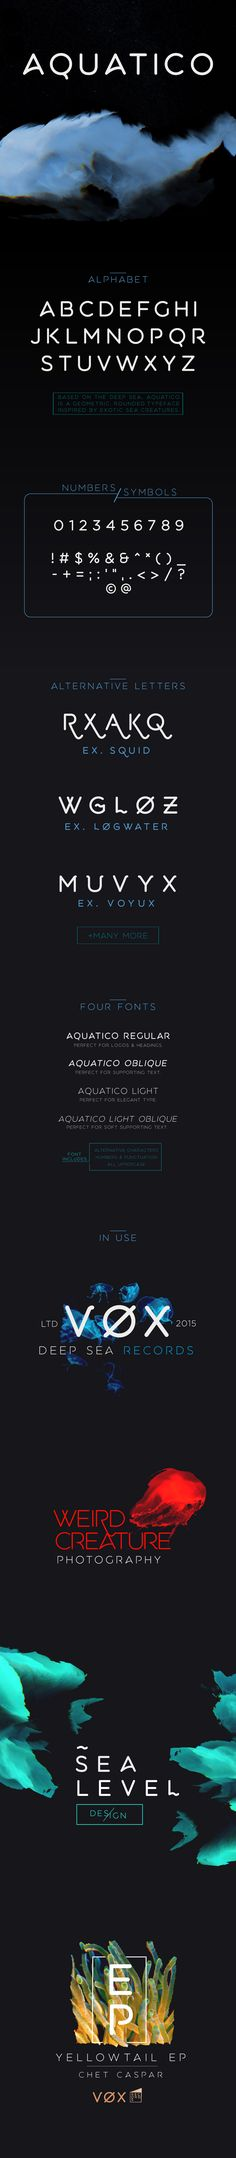 Aquatico - Free Typeface on Typography Served Calligraphy Fonts, Typography Letters, Typography Served, Free Typeface, Serif Typeface, Web Design Projects, Graphic Projects, Branding, Sans Serif Fonts